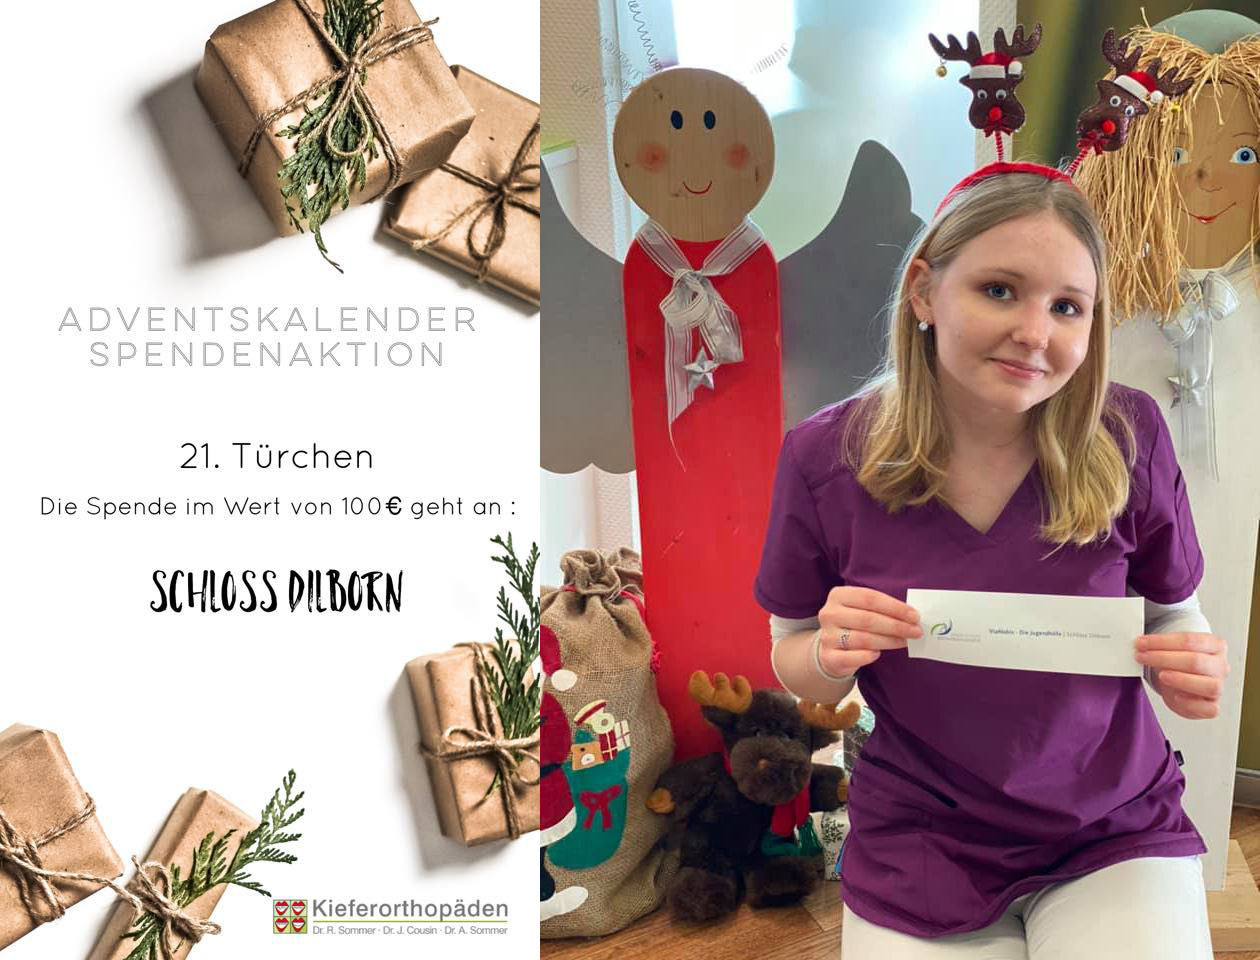 Adventskalender Spendenaktion · 21. Türchen